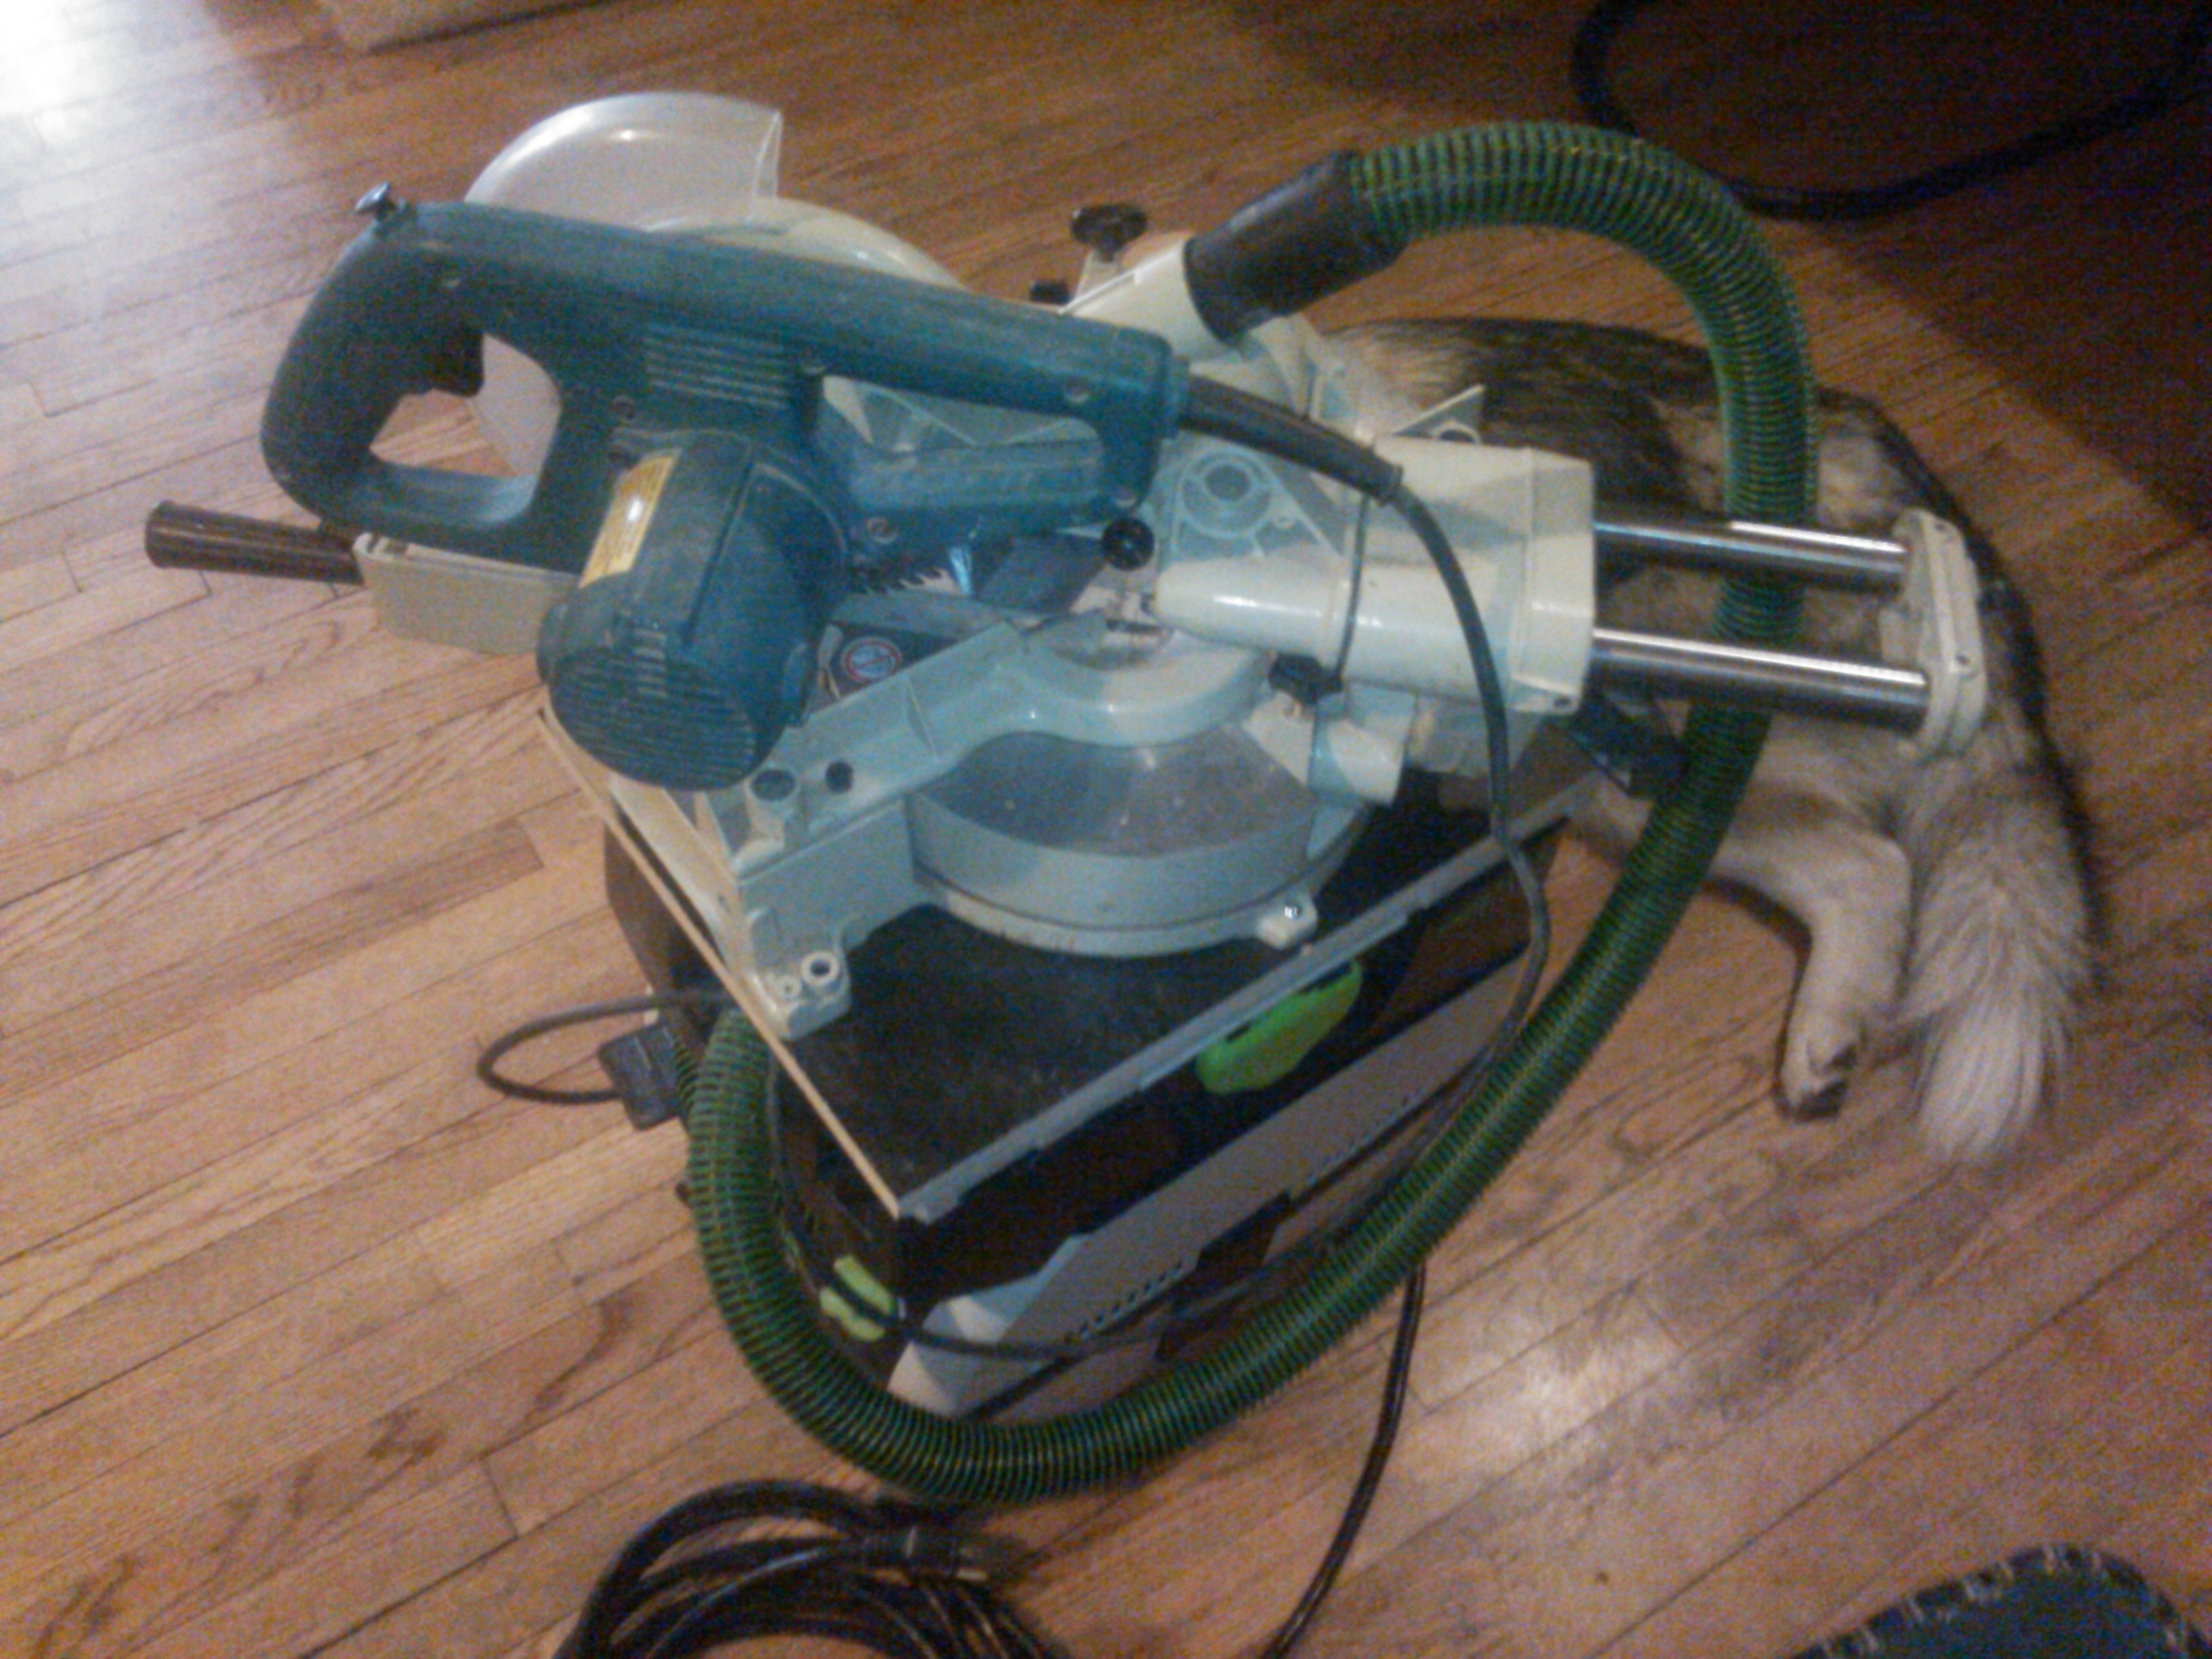 Replacing Miter saw need some recommendations.-ncm_0007.jpg